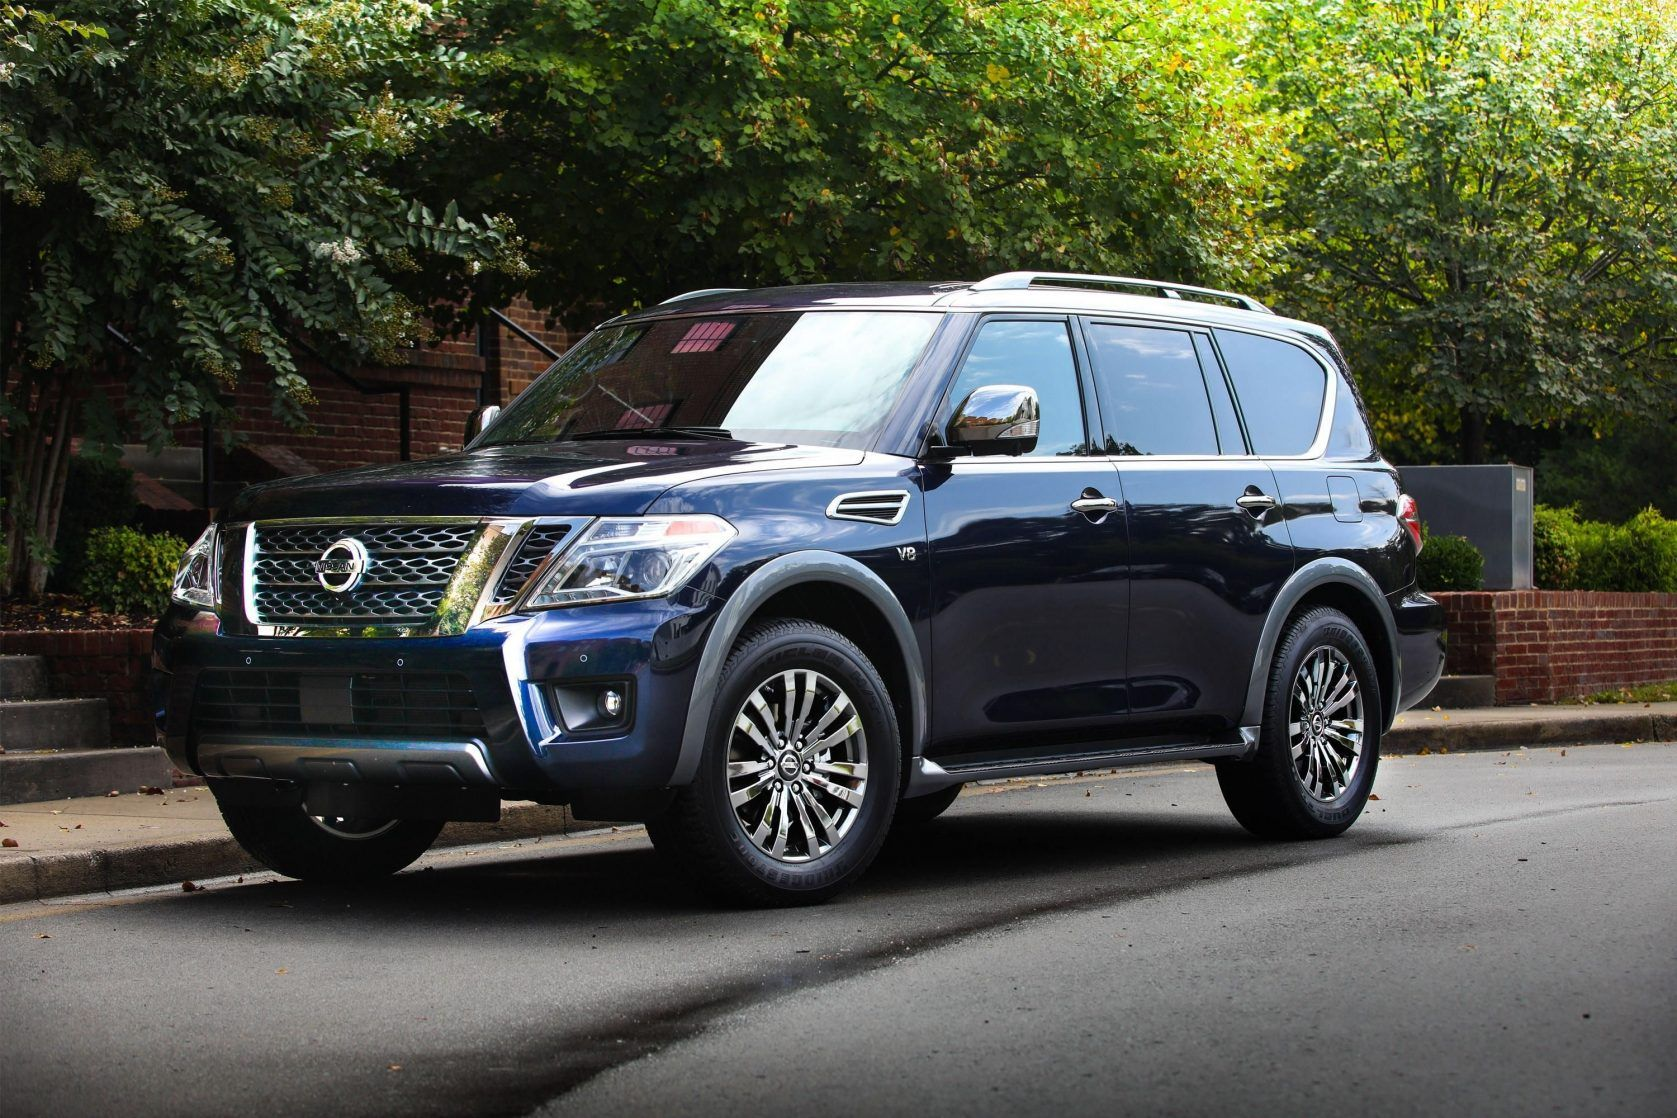 The Upcoming 2020 Nissan Armada Is The New High End Suv That Is Completely Crafted For A Big Household The Last Year Model Has Act Nissan Armada Nissan Armada